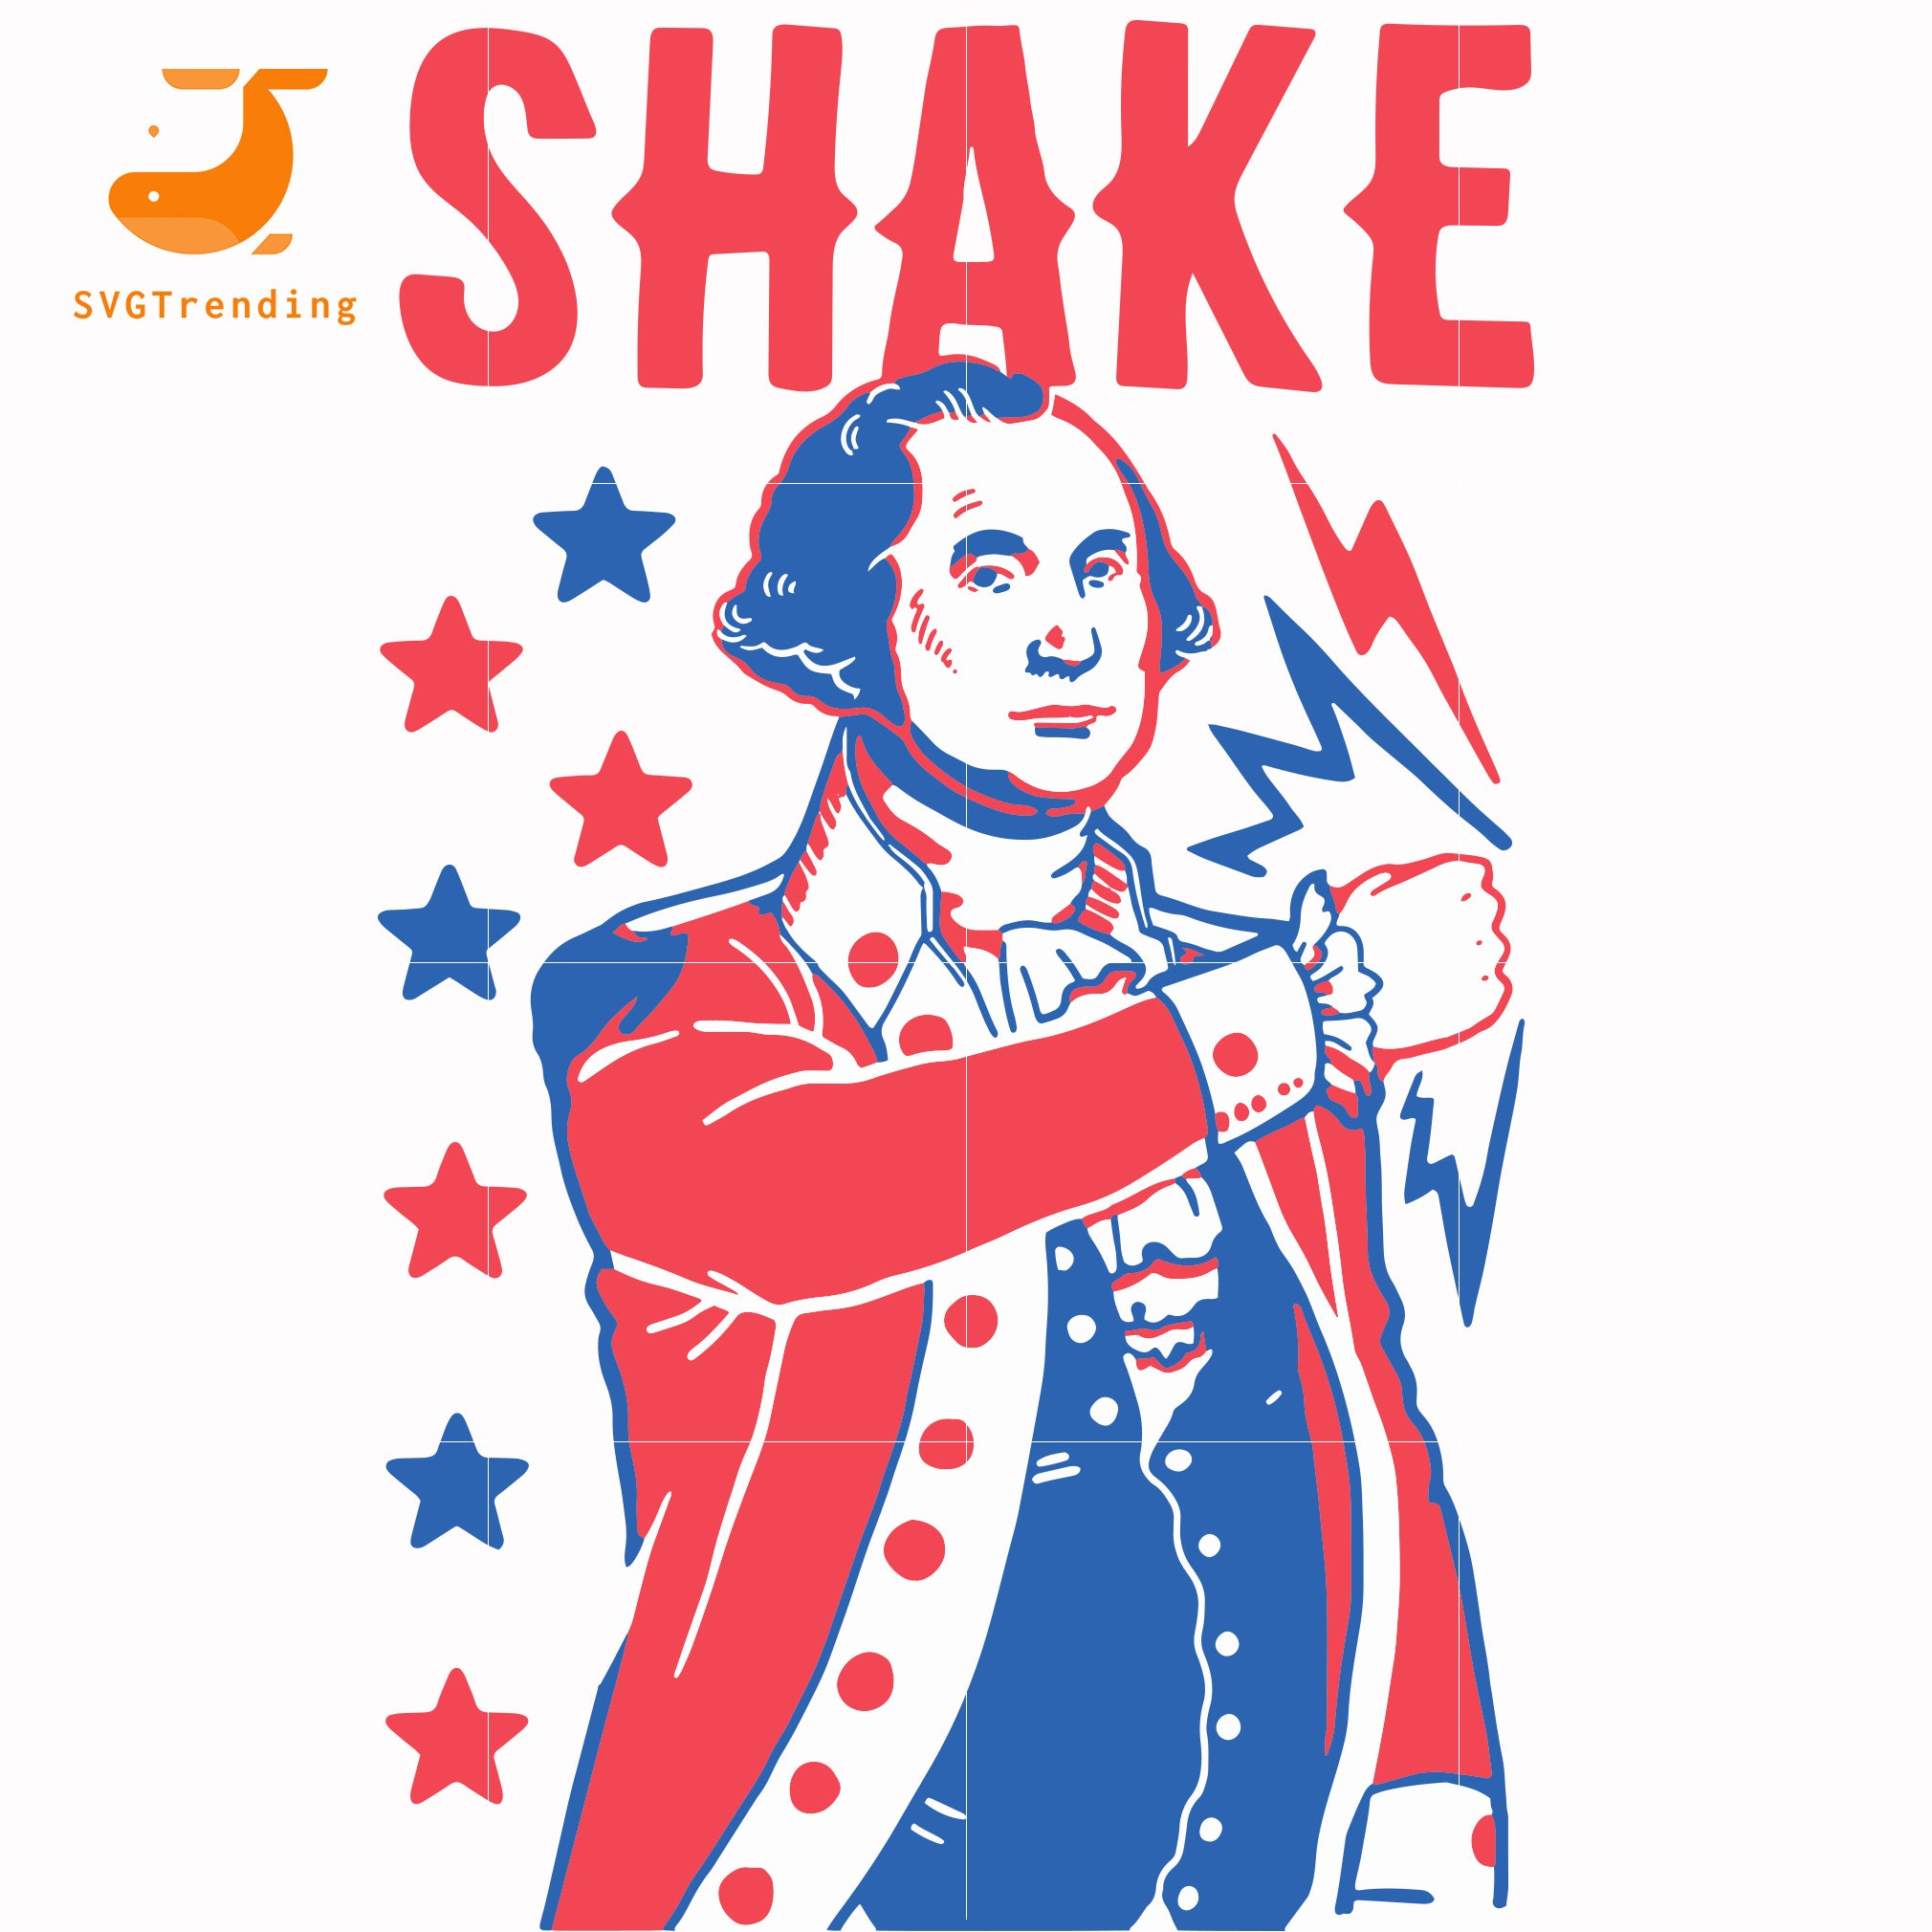 shake svg, png, dxf, eps, digital file